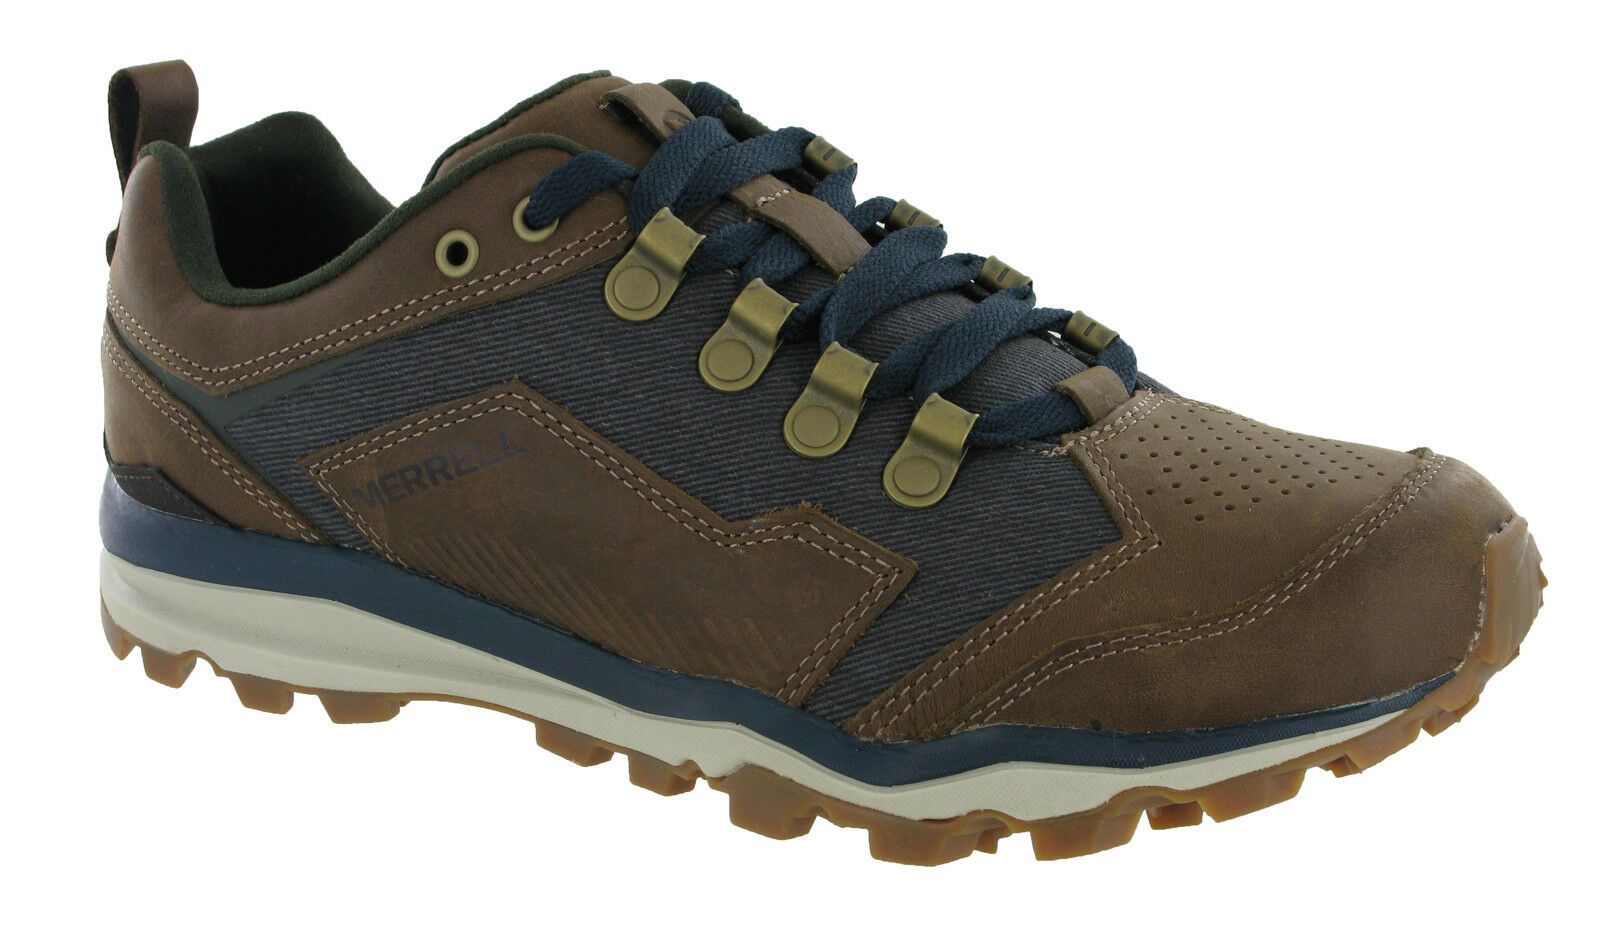 Merrell Merrell Merrell Walking schuhe All Out Crusher Casual Comfort Lace Up Trekking Trainer e5a657